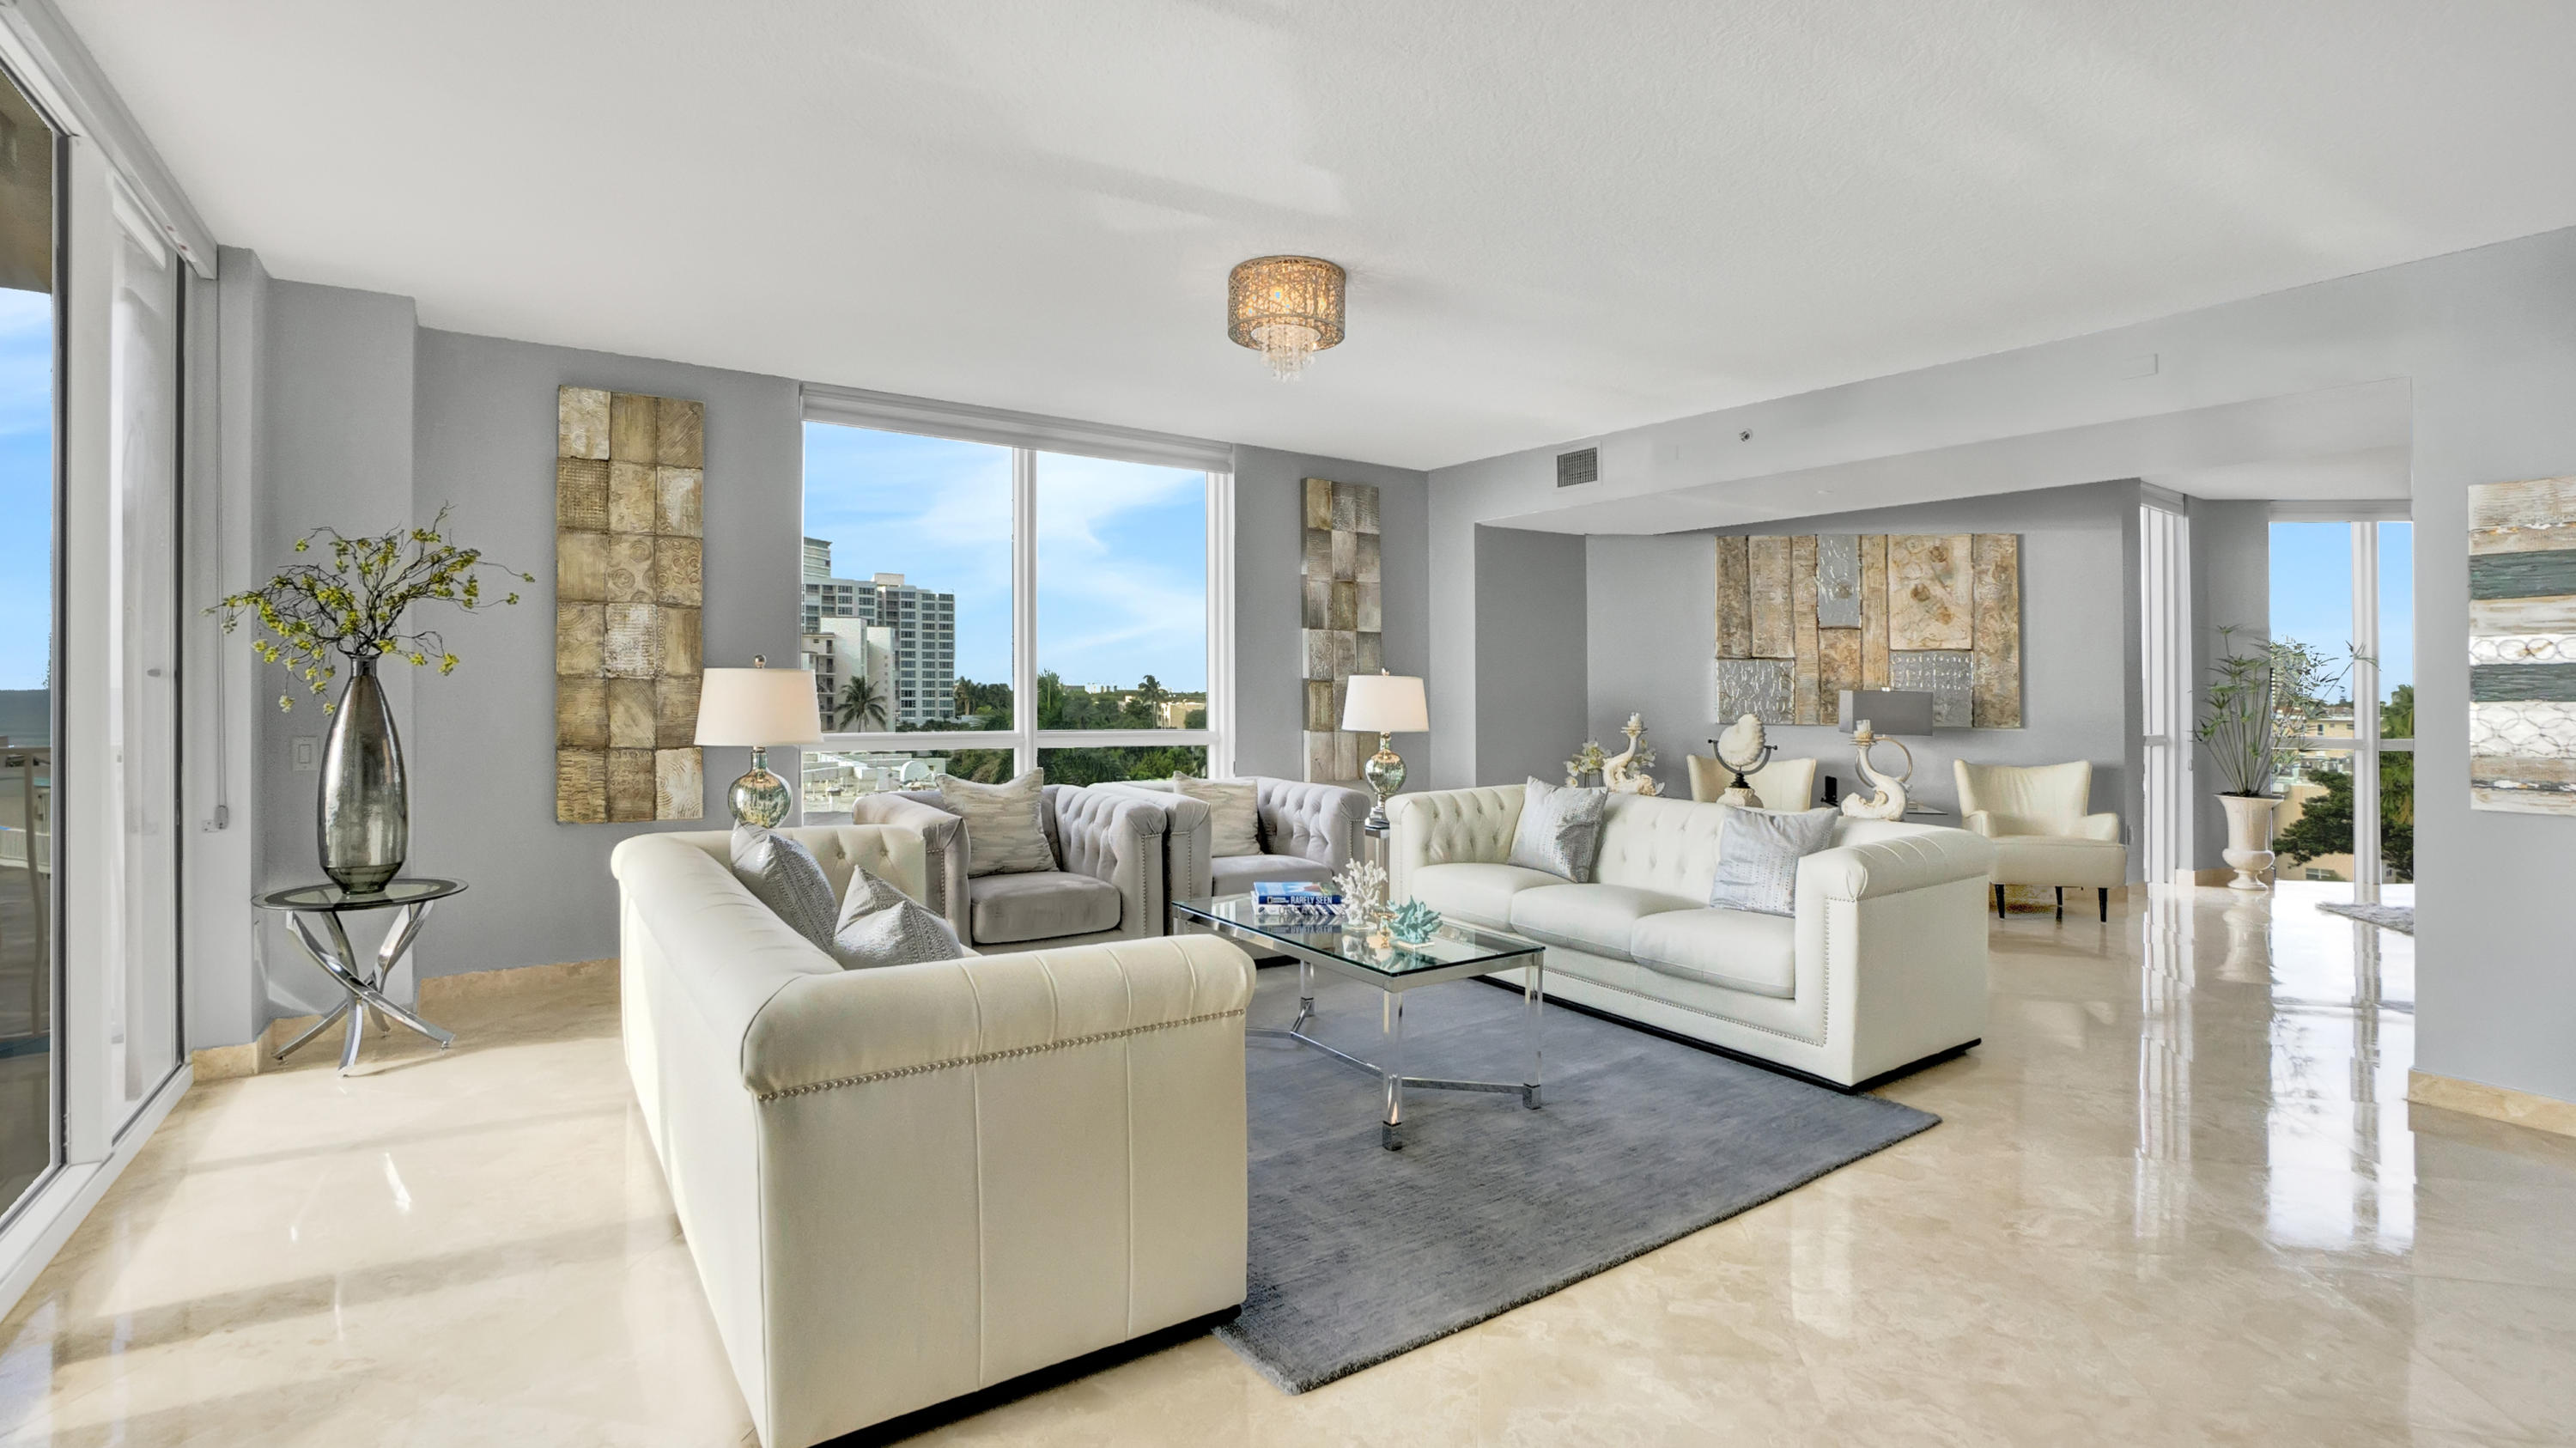 1460 S Ocean Boulevard, Lauderdale by the Sea, Florida